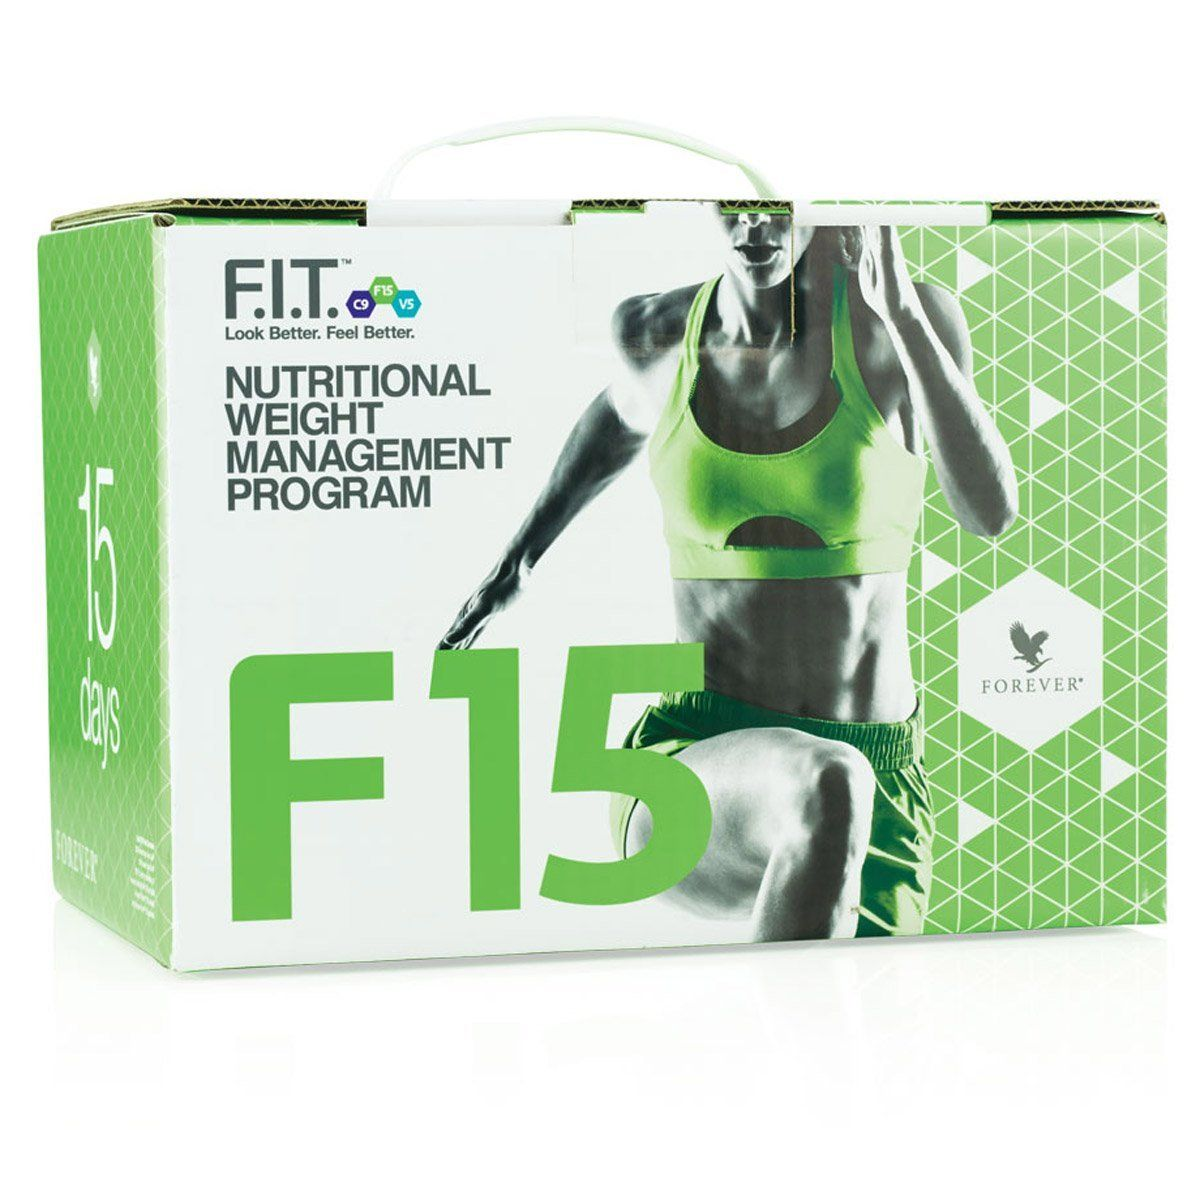 Fit 15 Intermediar Ciocolata